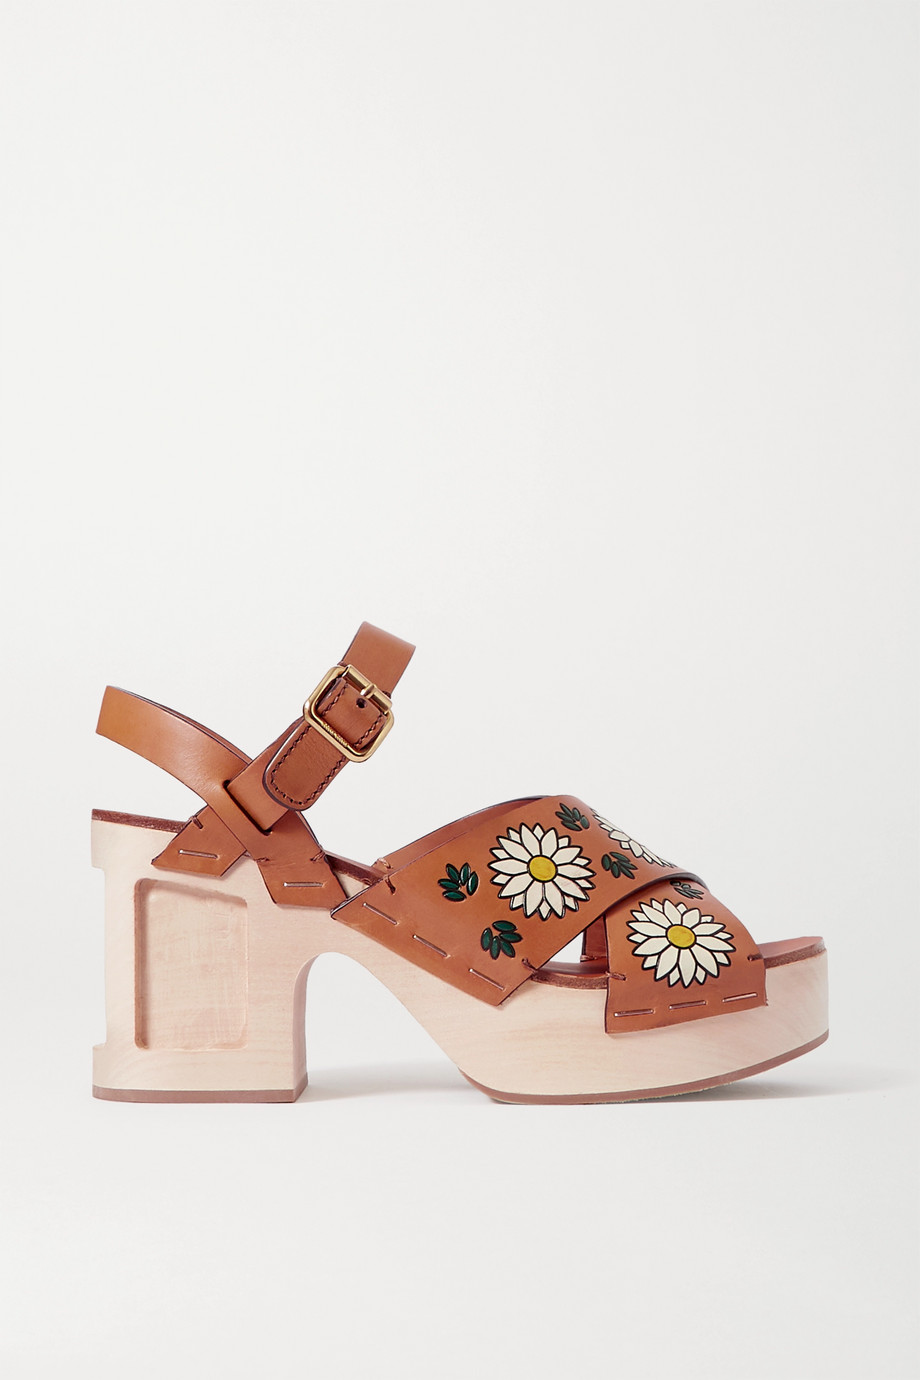 Miu Miu Printed leather sandals